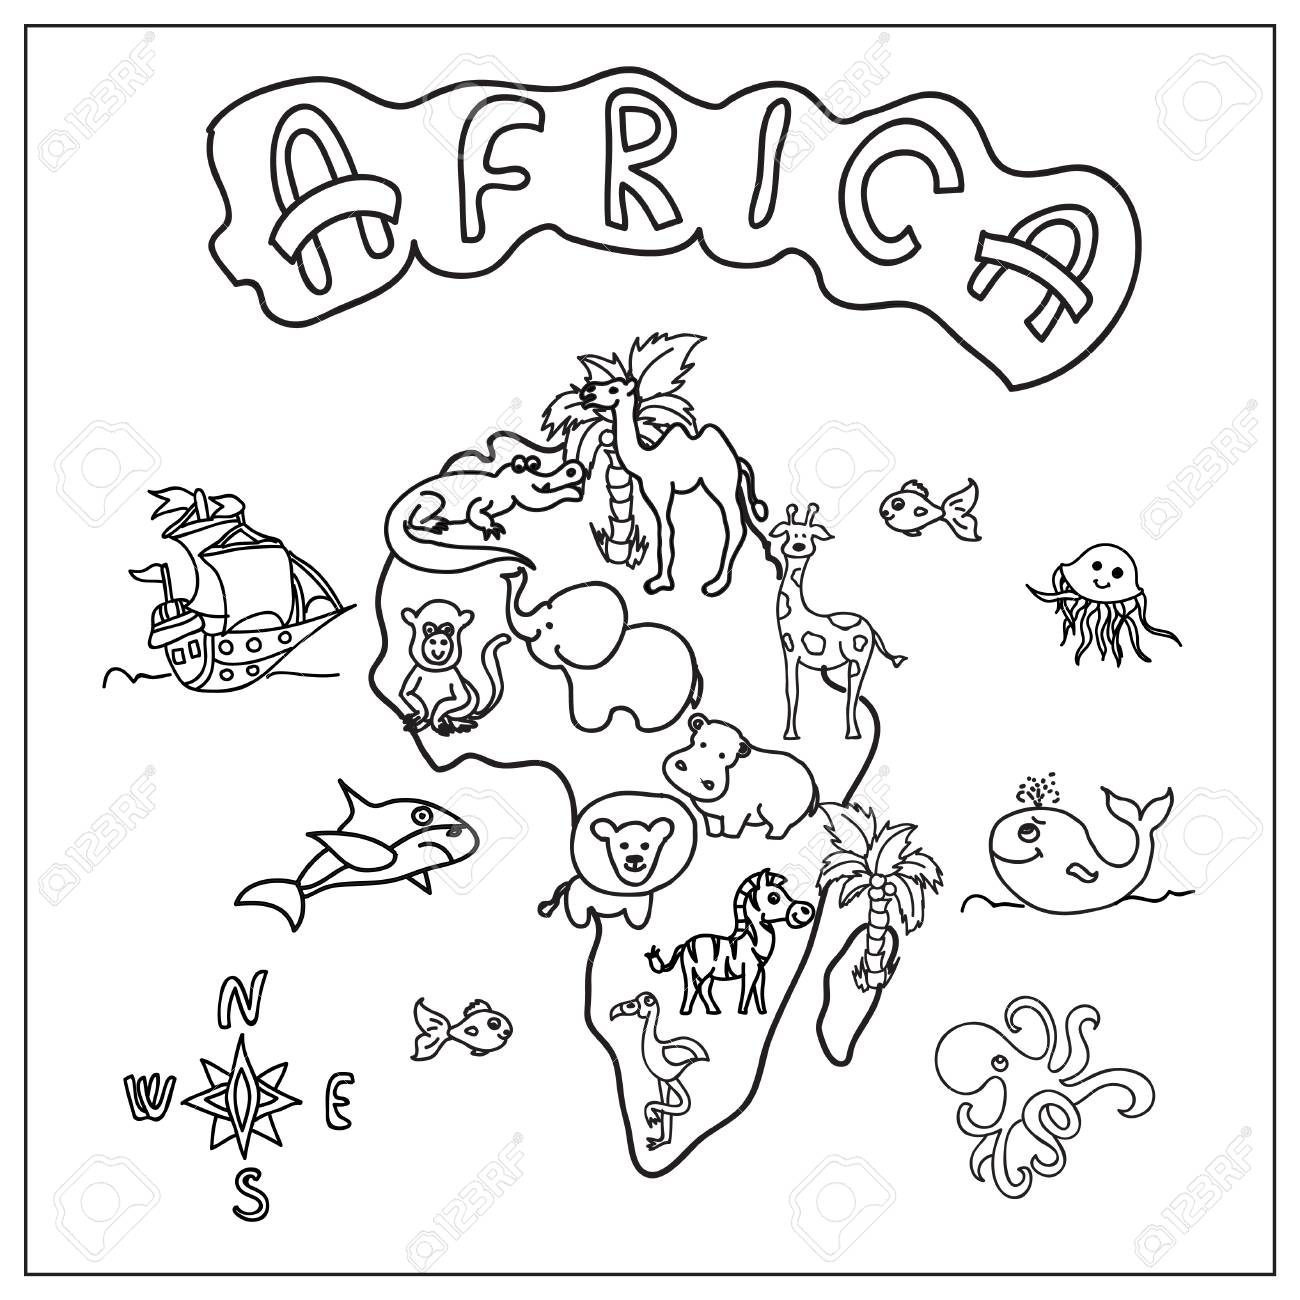 Map Drawing For Kids At Getdrawings